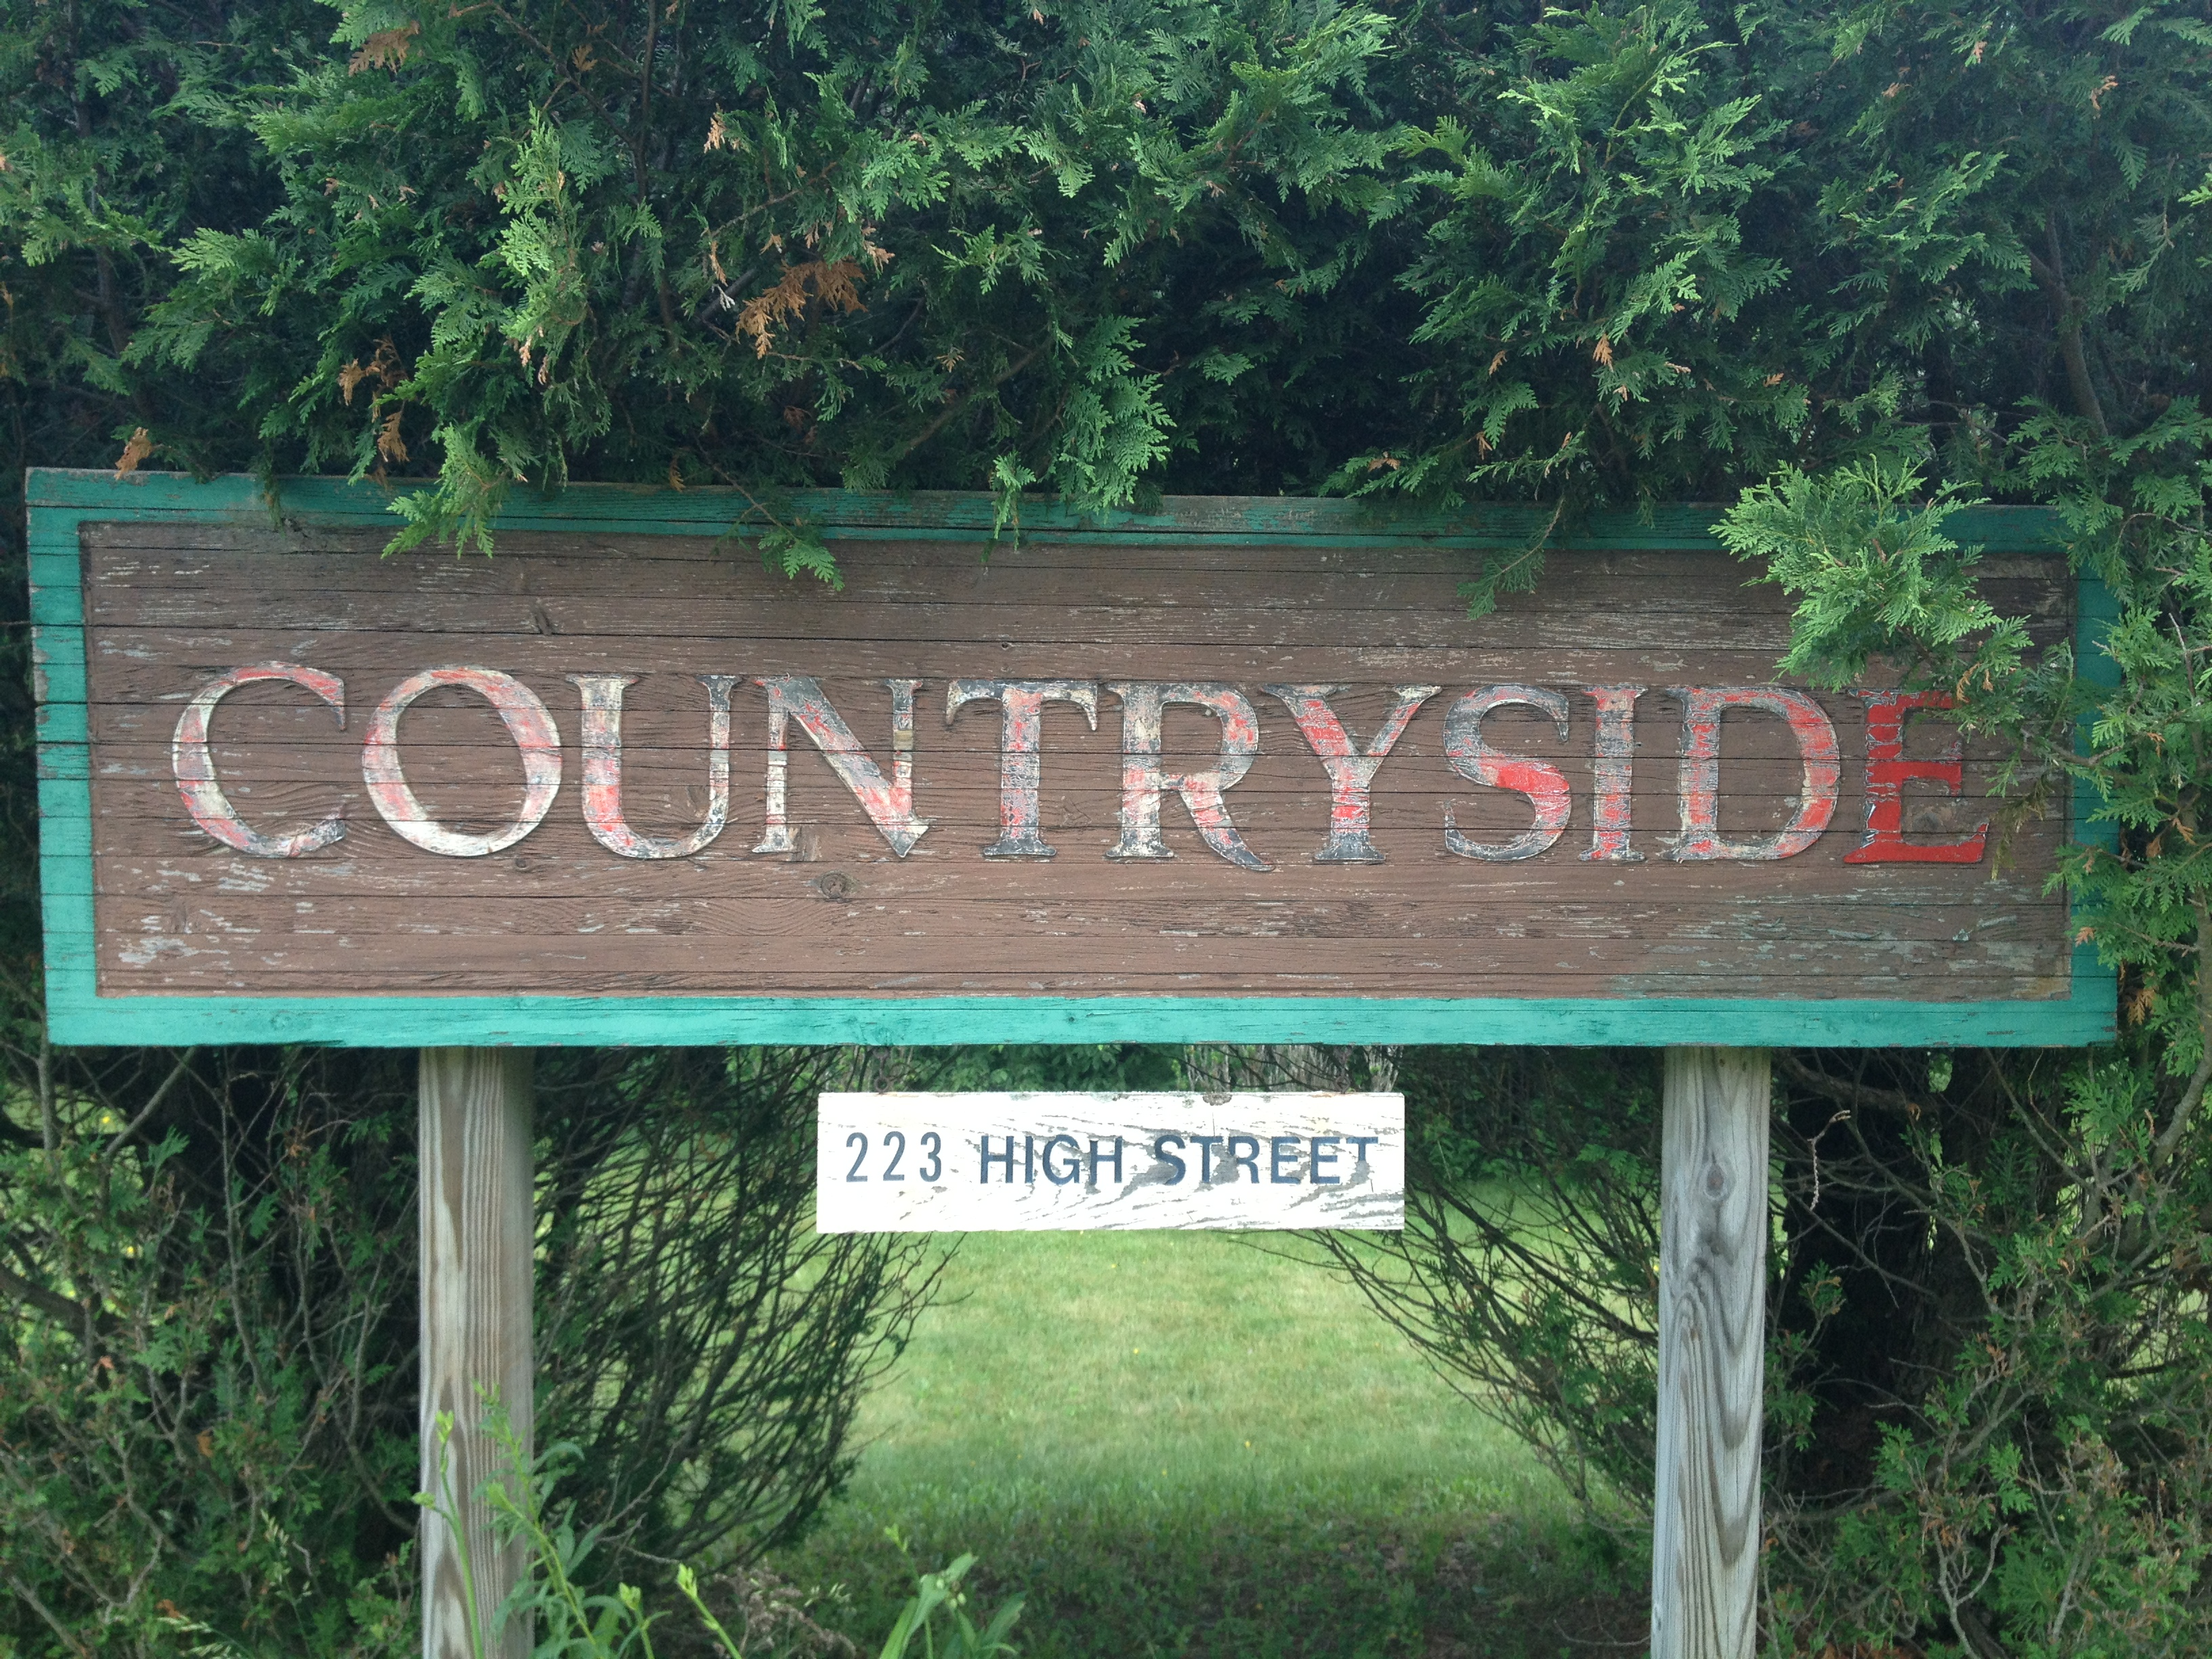 Countryside Mobile Home Park | Oxford Property Management on countryside boston homes, countryside landscaping, countryside cottages, countryside churches, countryside sheds,